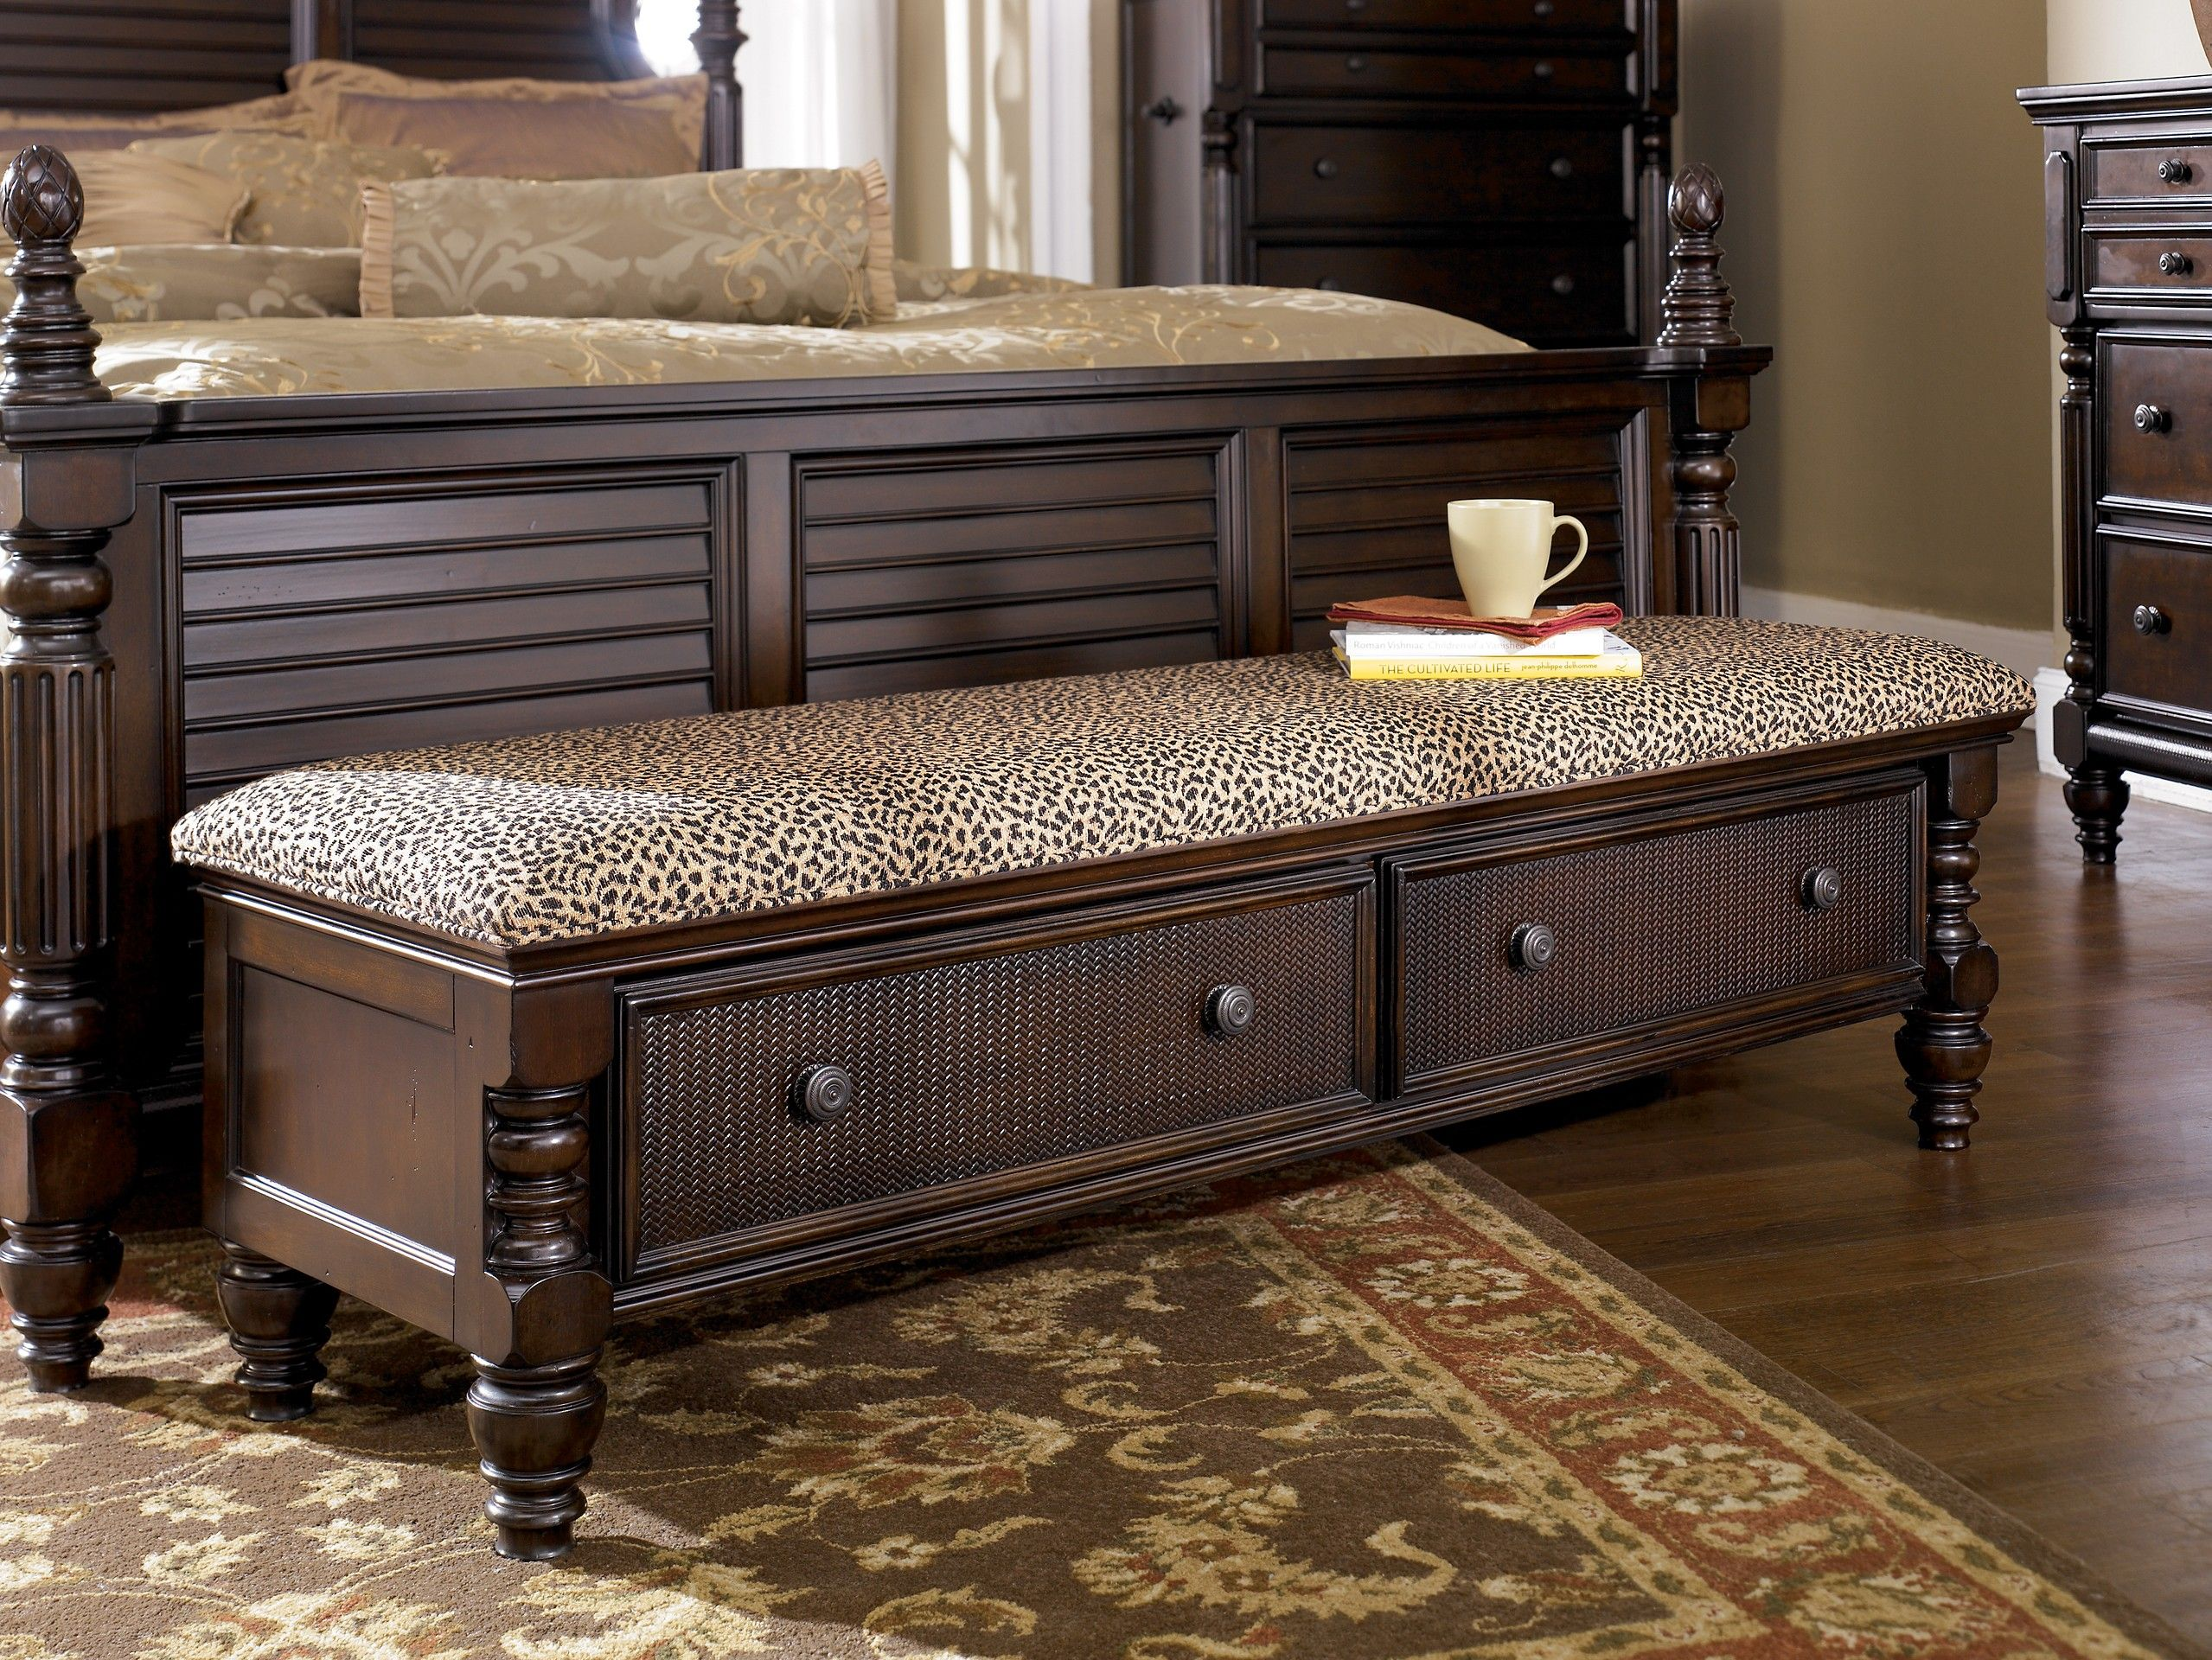 ashley key town b millennium dark brown bedroom storage  - ashley key town b millennium dark brown bedroom storage bench  withits sophisticated